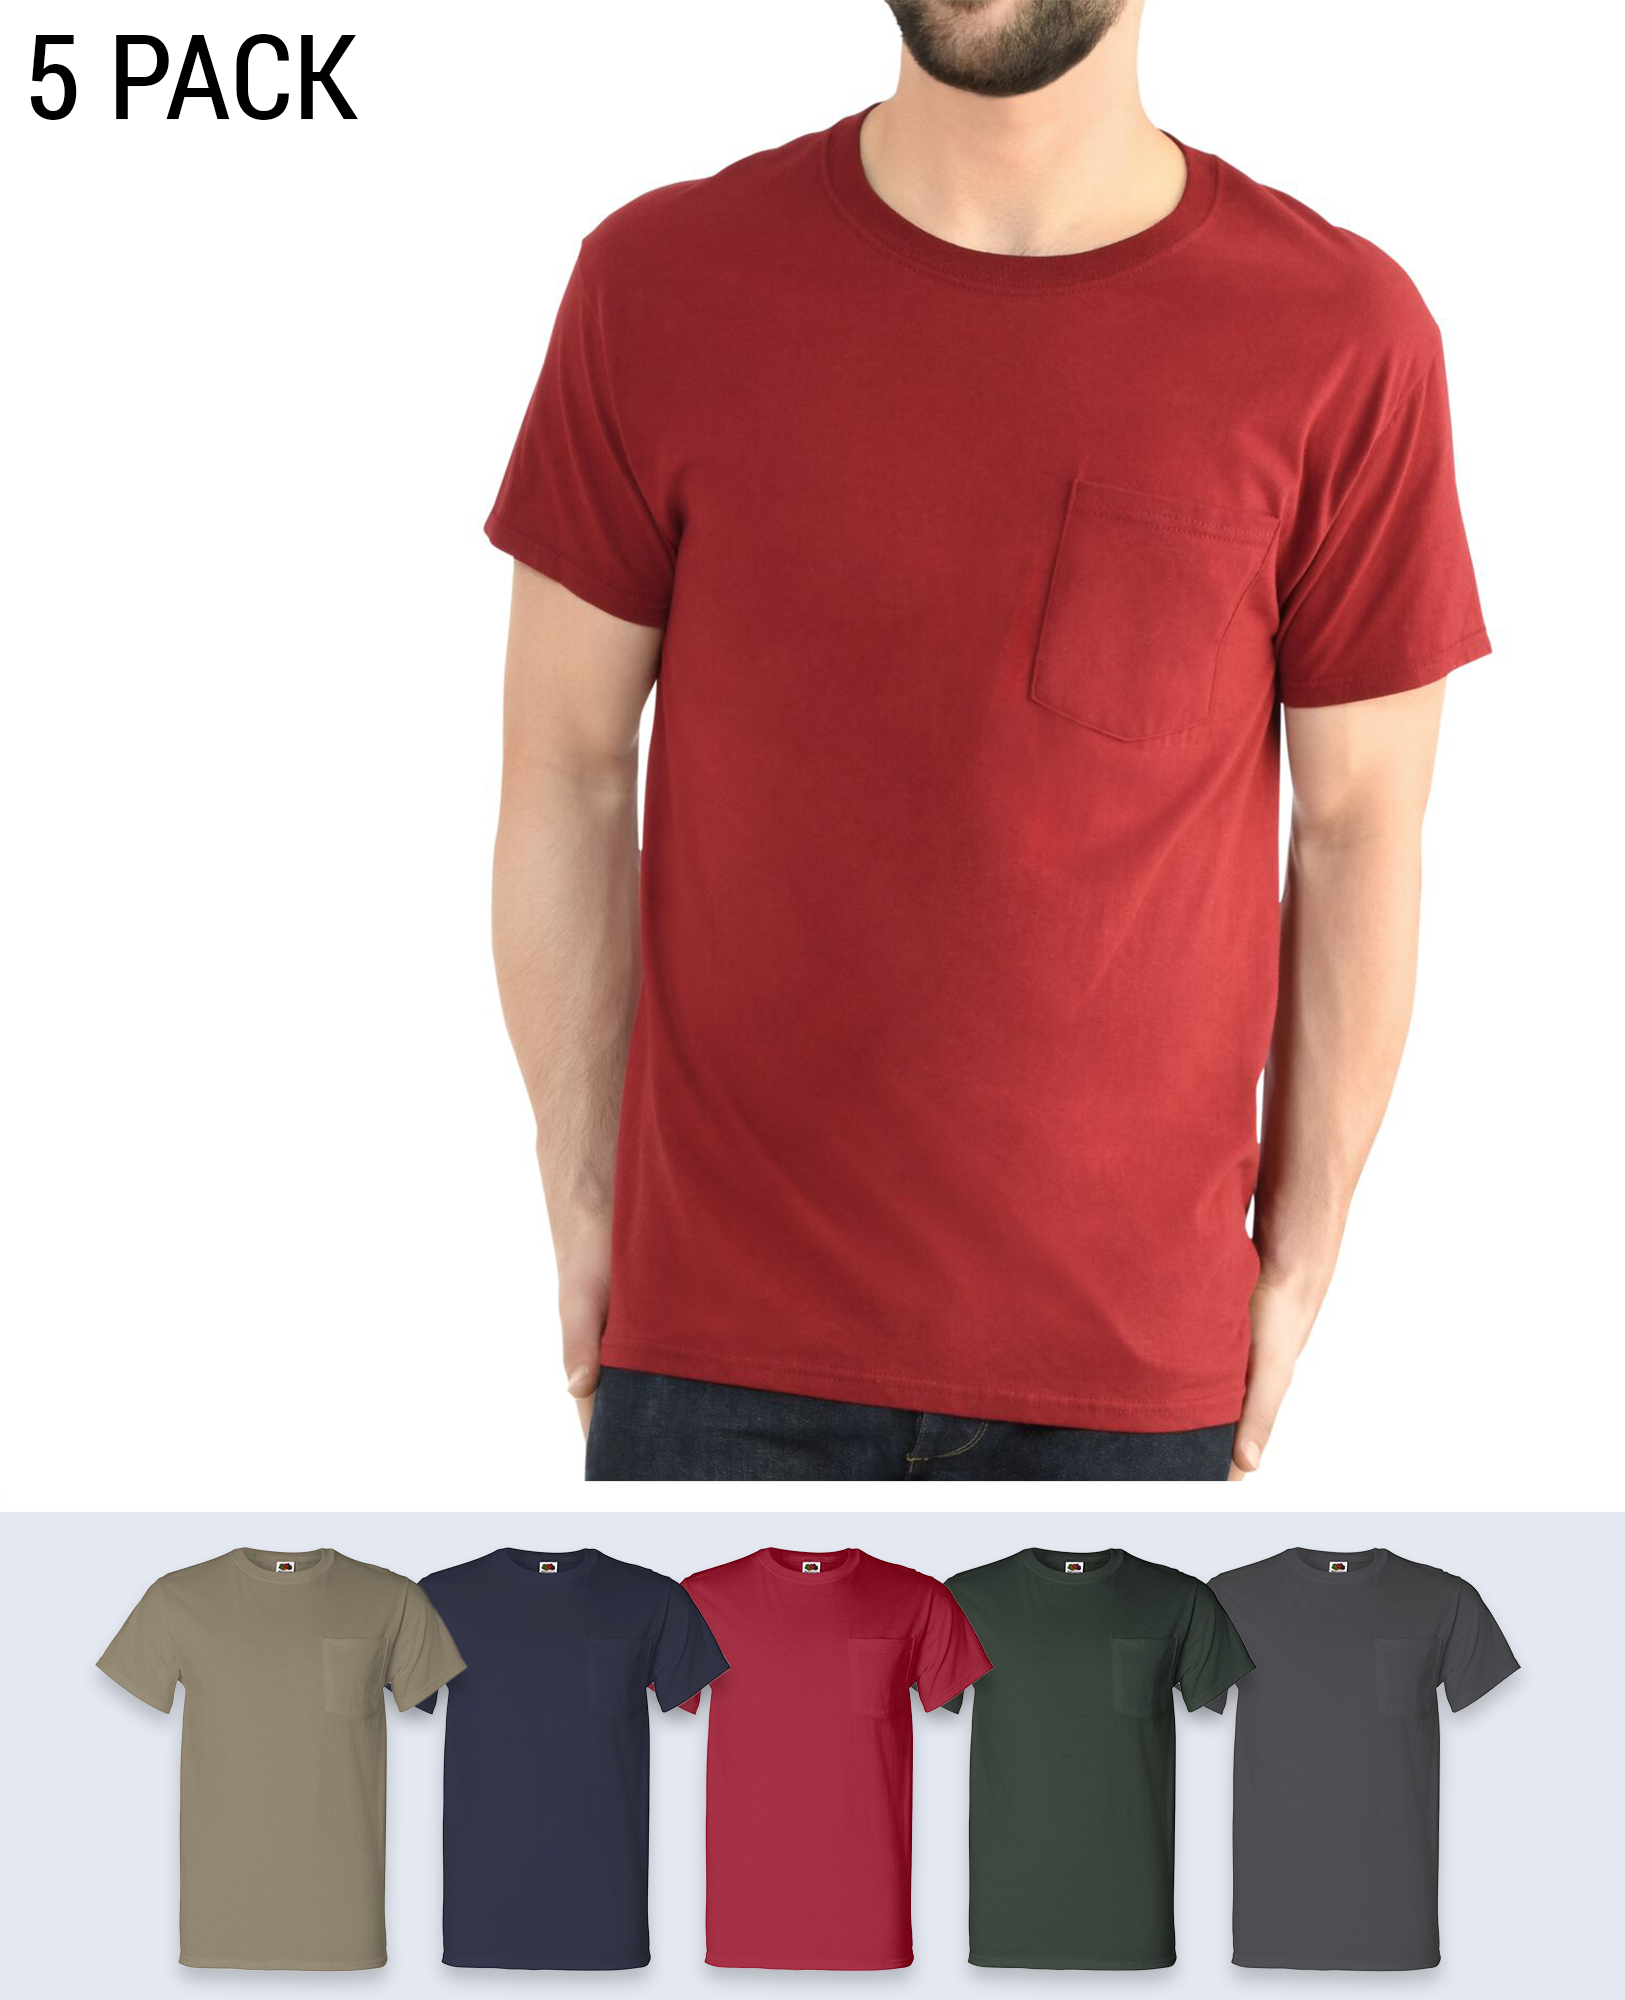 5 pack Pocket T-shirt - T-Shirts - Fruit of the loom - BRANMA